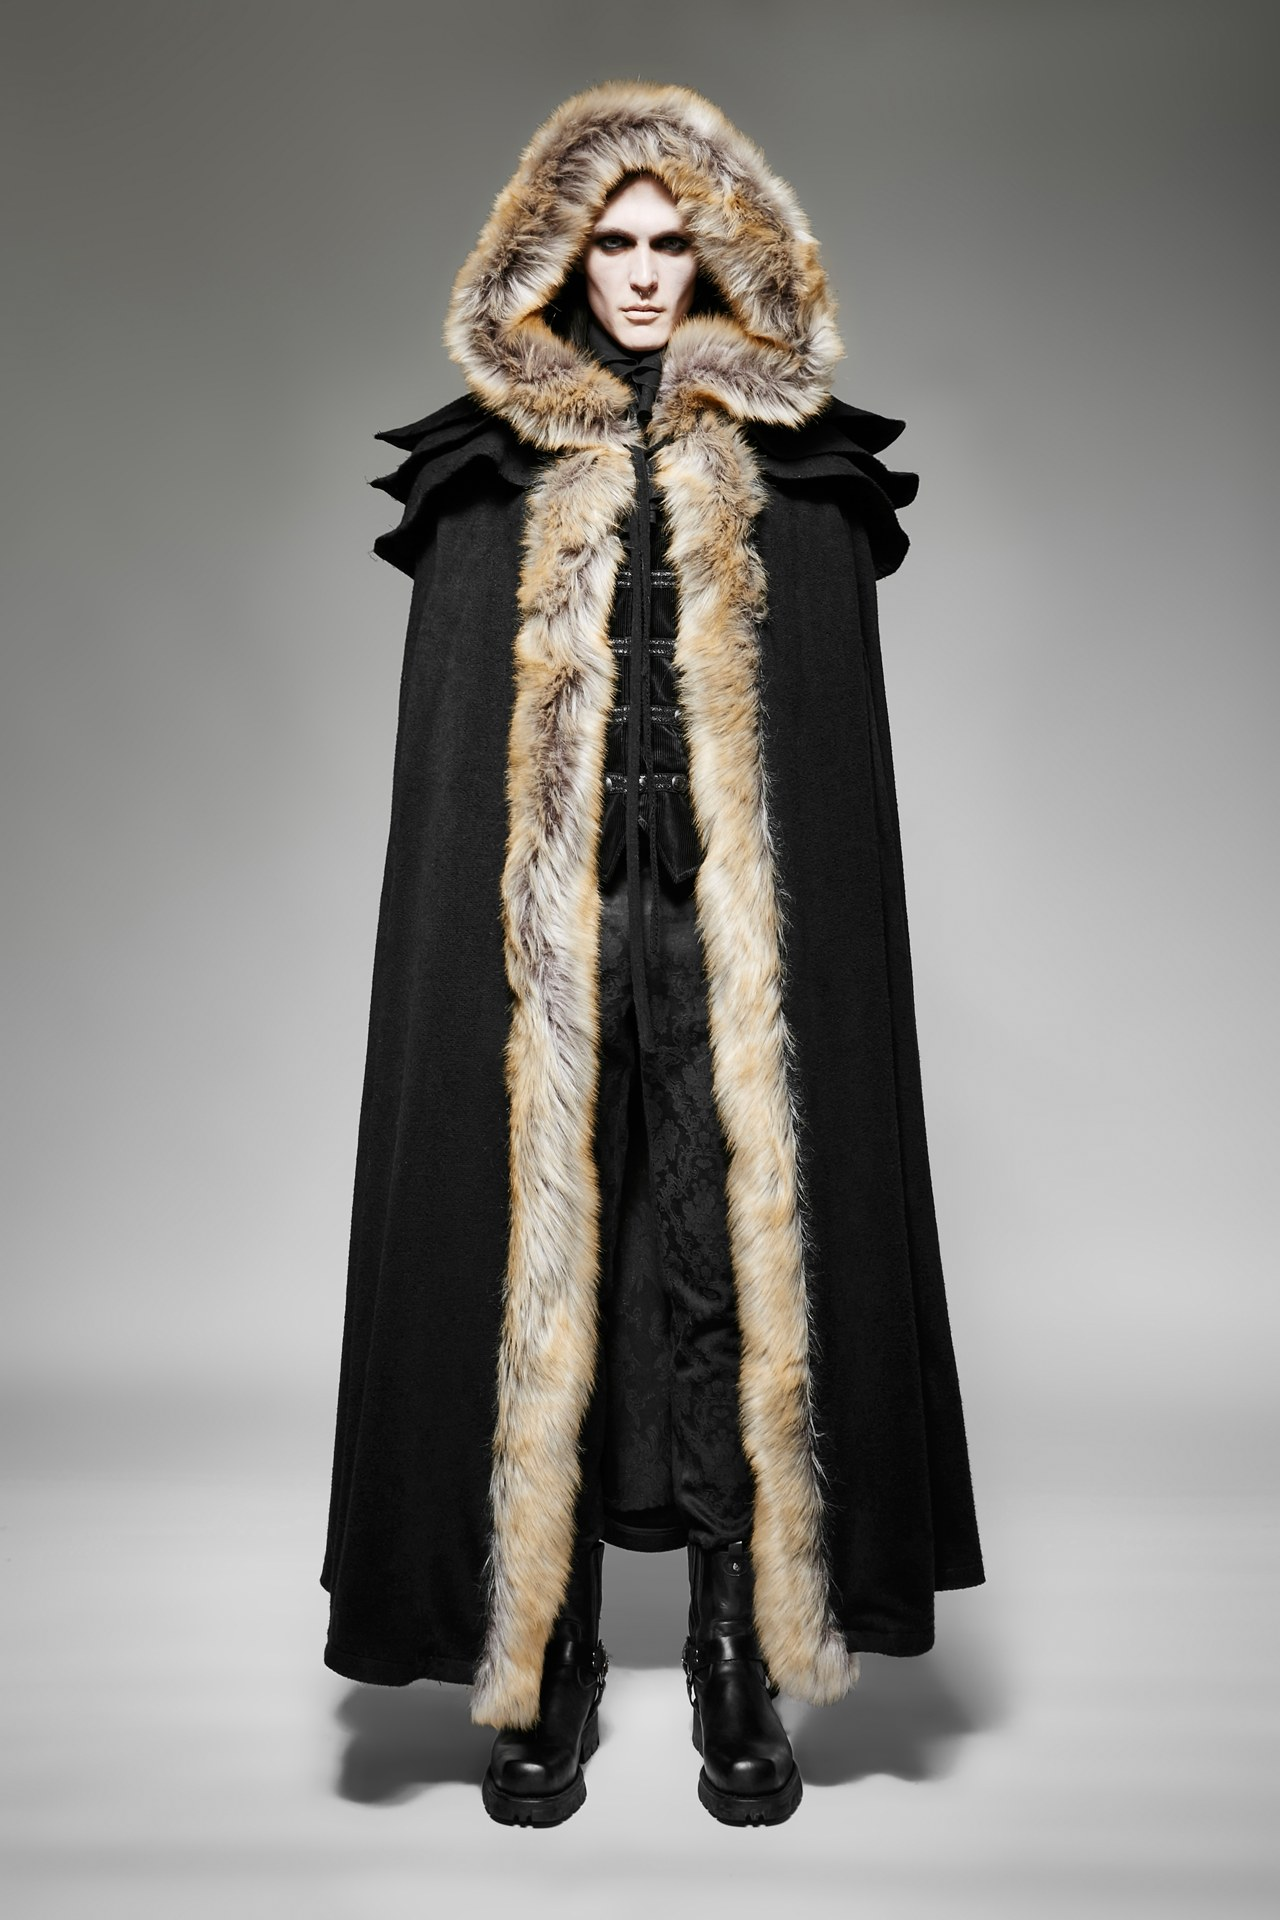 Long Gothic Red or Black Fur Trimmed Hooded Cloak (Color: (B-R): Black)